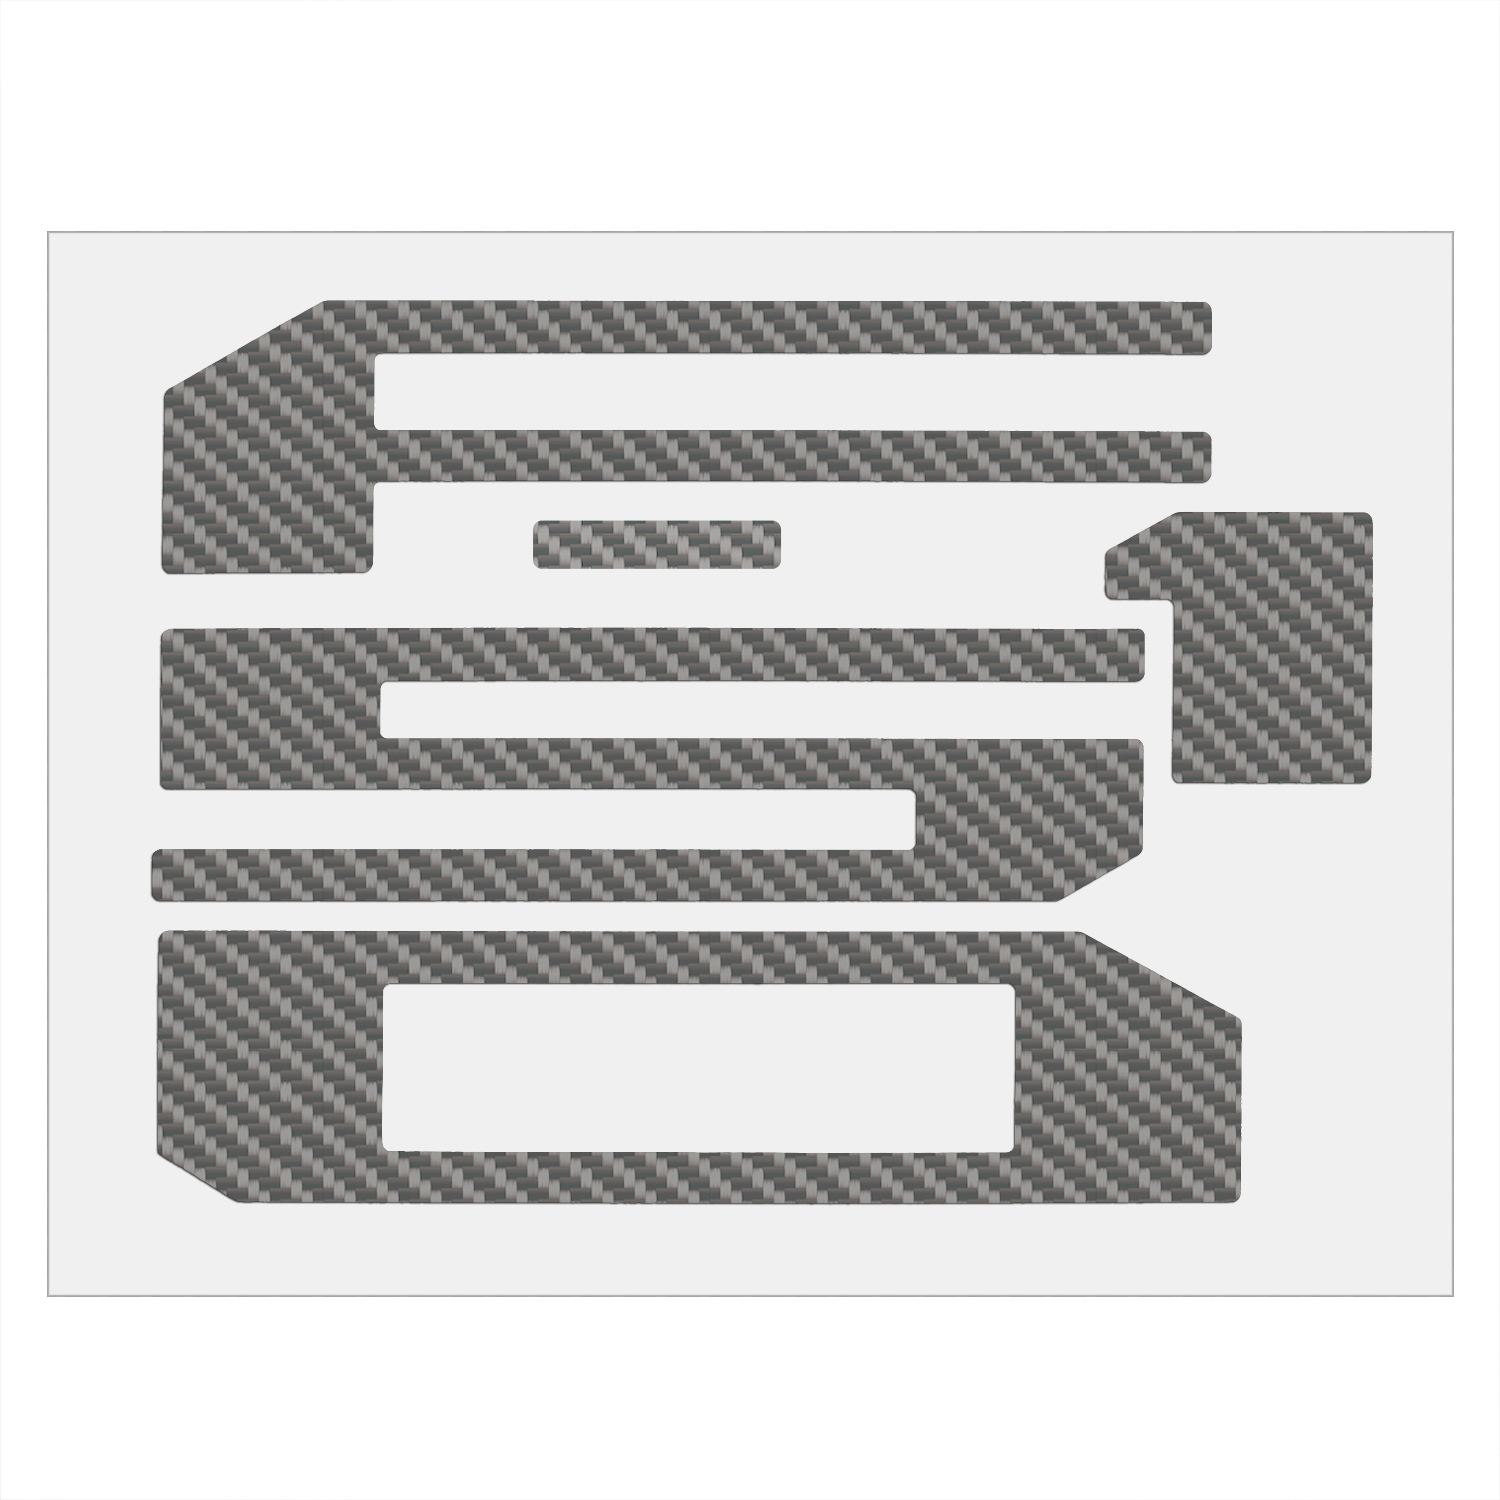 Ford F-150 2018 Tailgate Silver Carbon Fiber Texture Letter Insert Decal Sticker